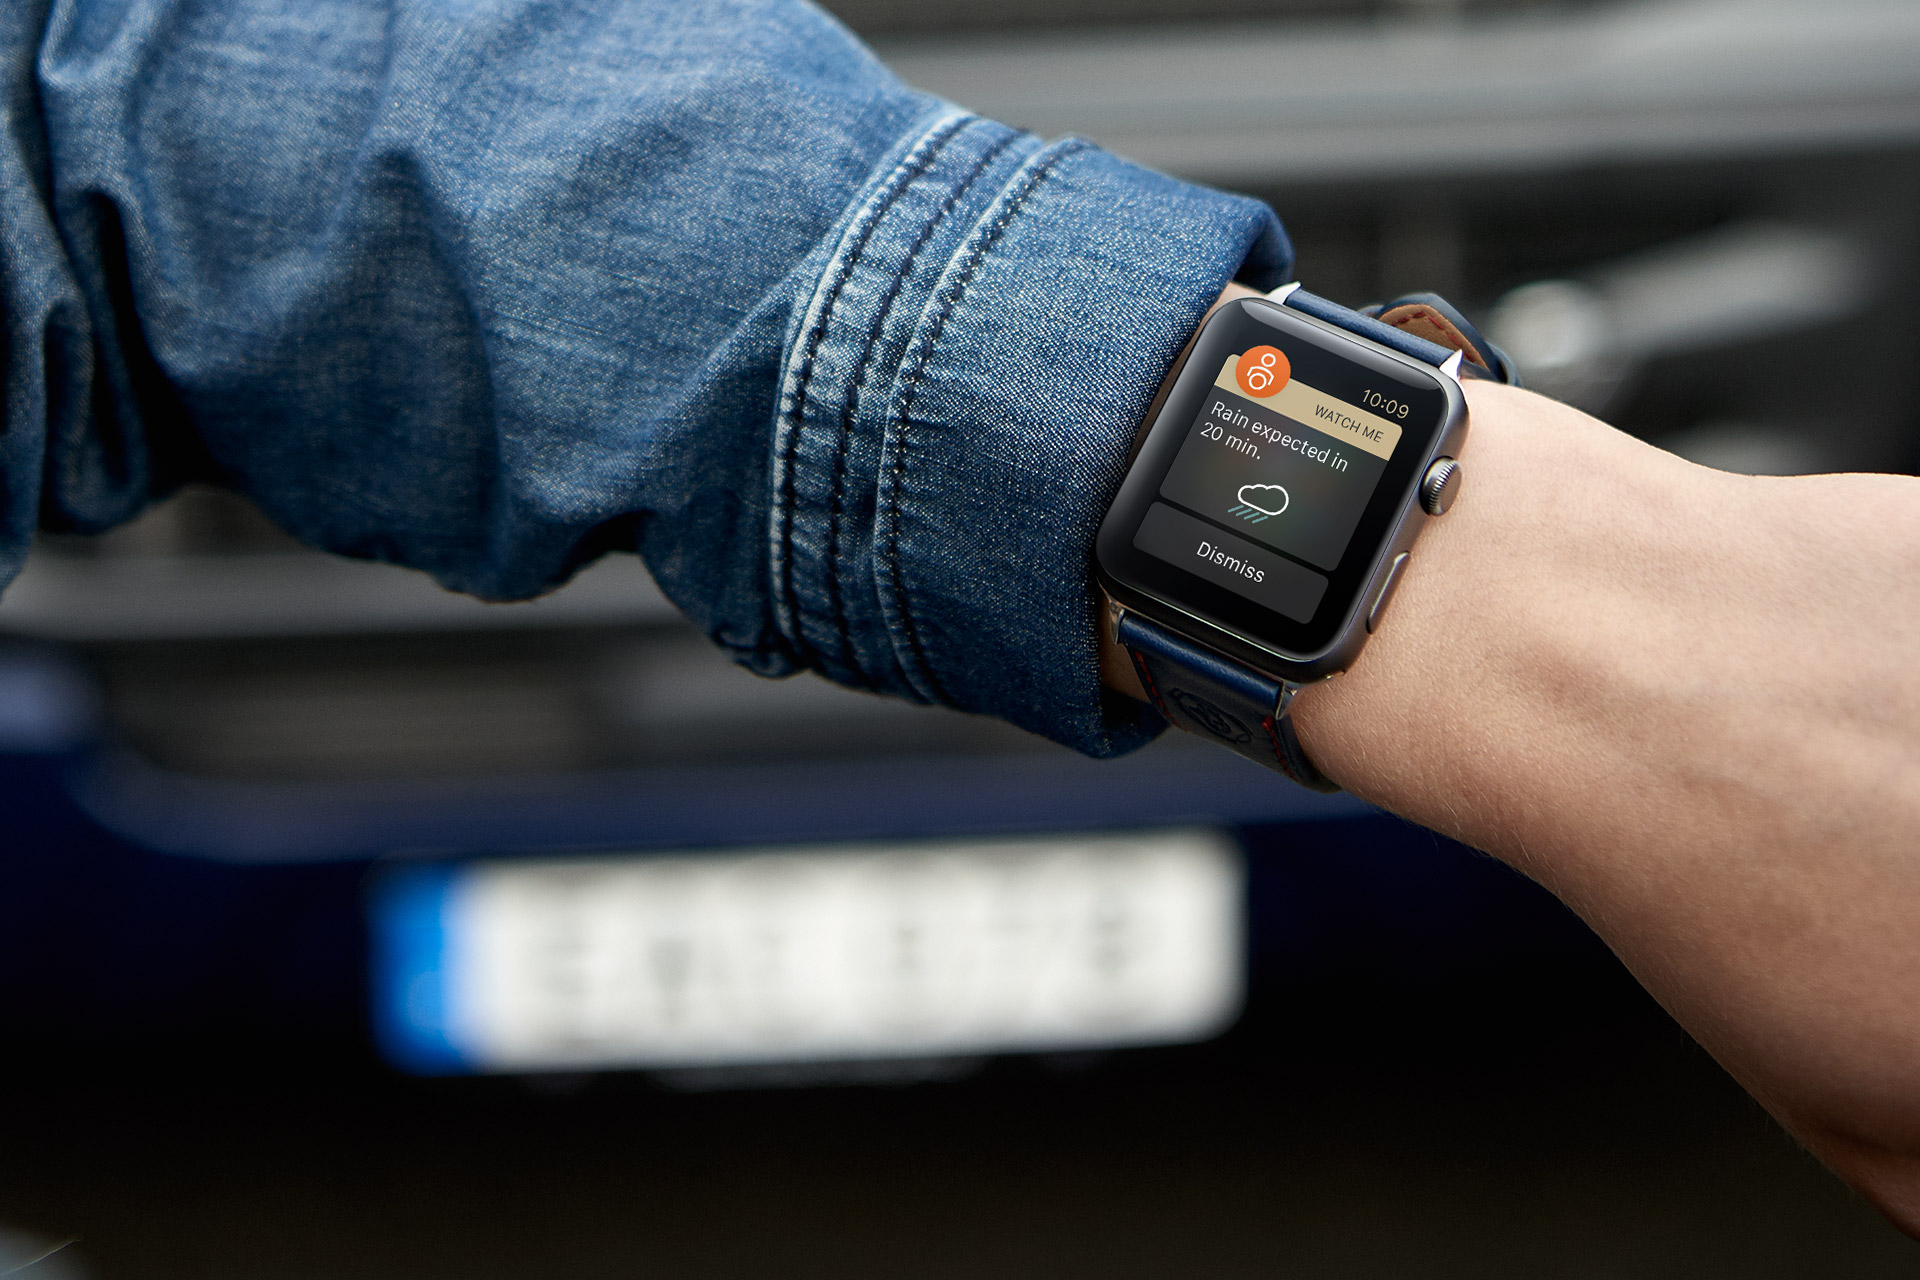 The Scania Edition of the Apple Watch